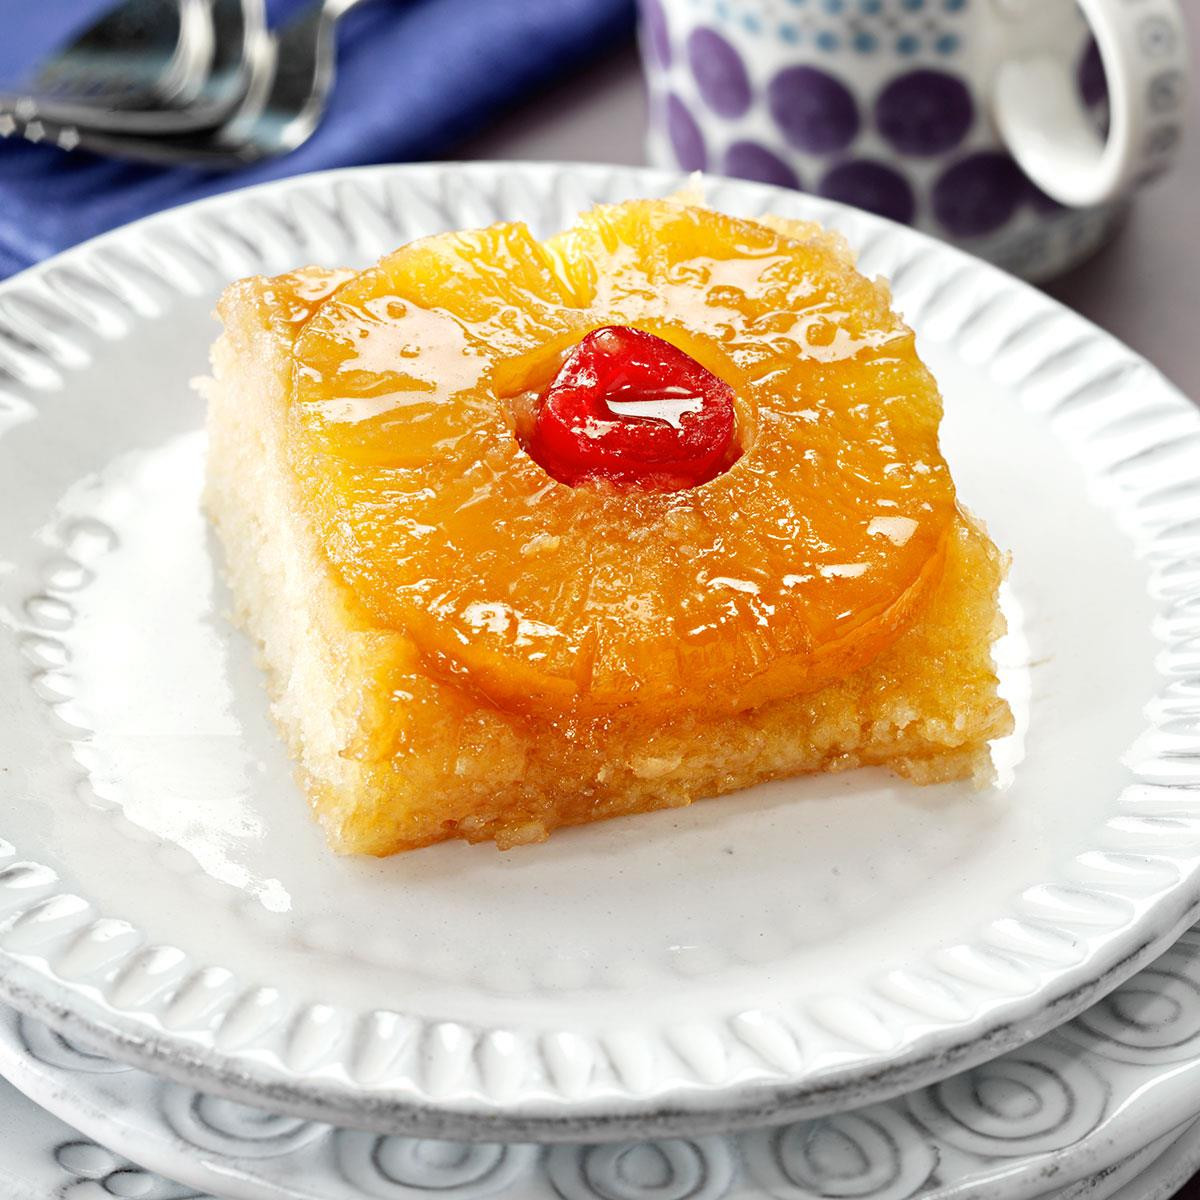 Healthy Pineapple Upside Down Cake  Makeover Pineapple Upside Down Cake Recipe